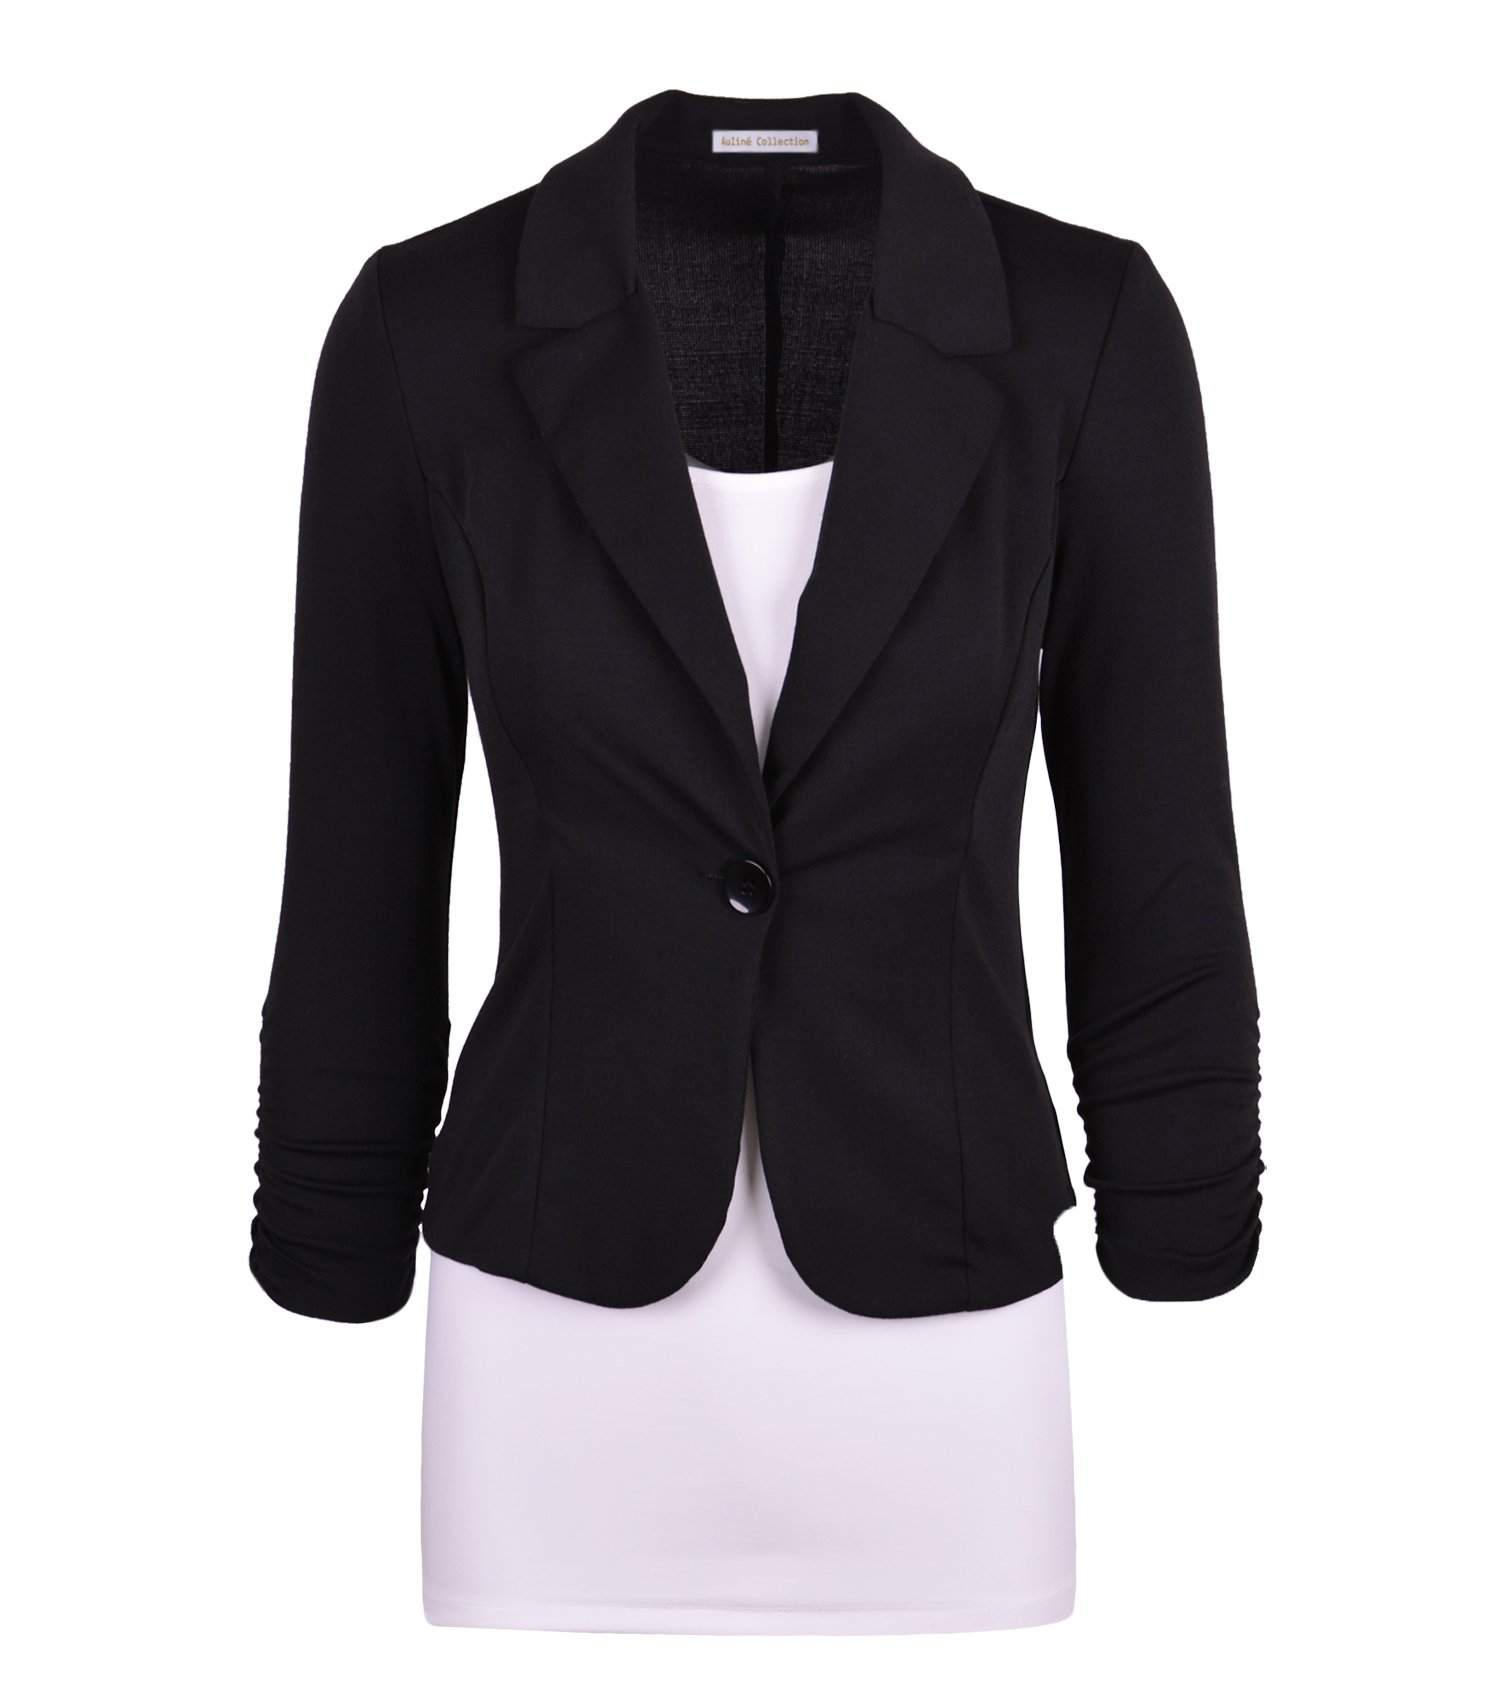 Auliné Collection Women's Casual Work Solid Color Knit Blazer Black 3X